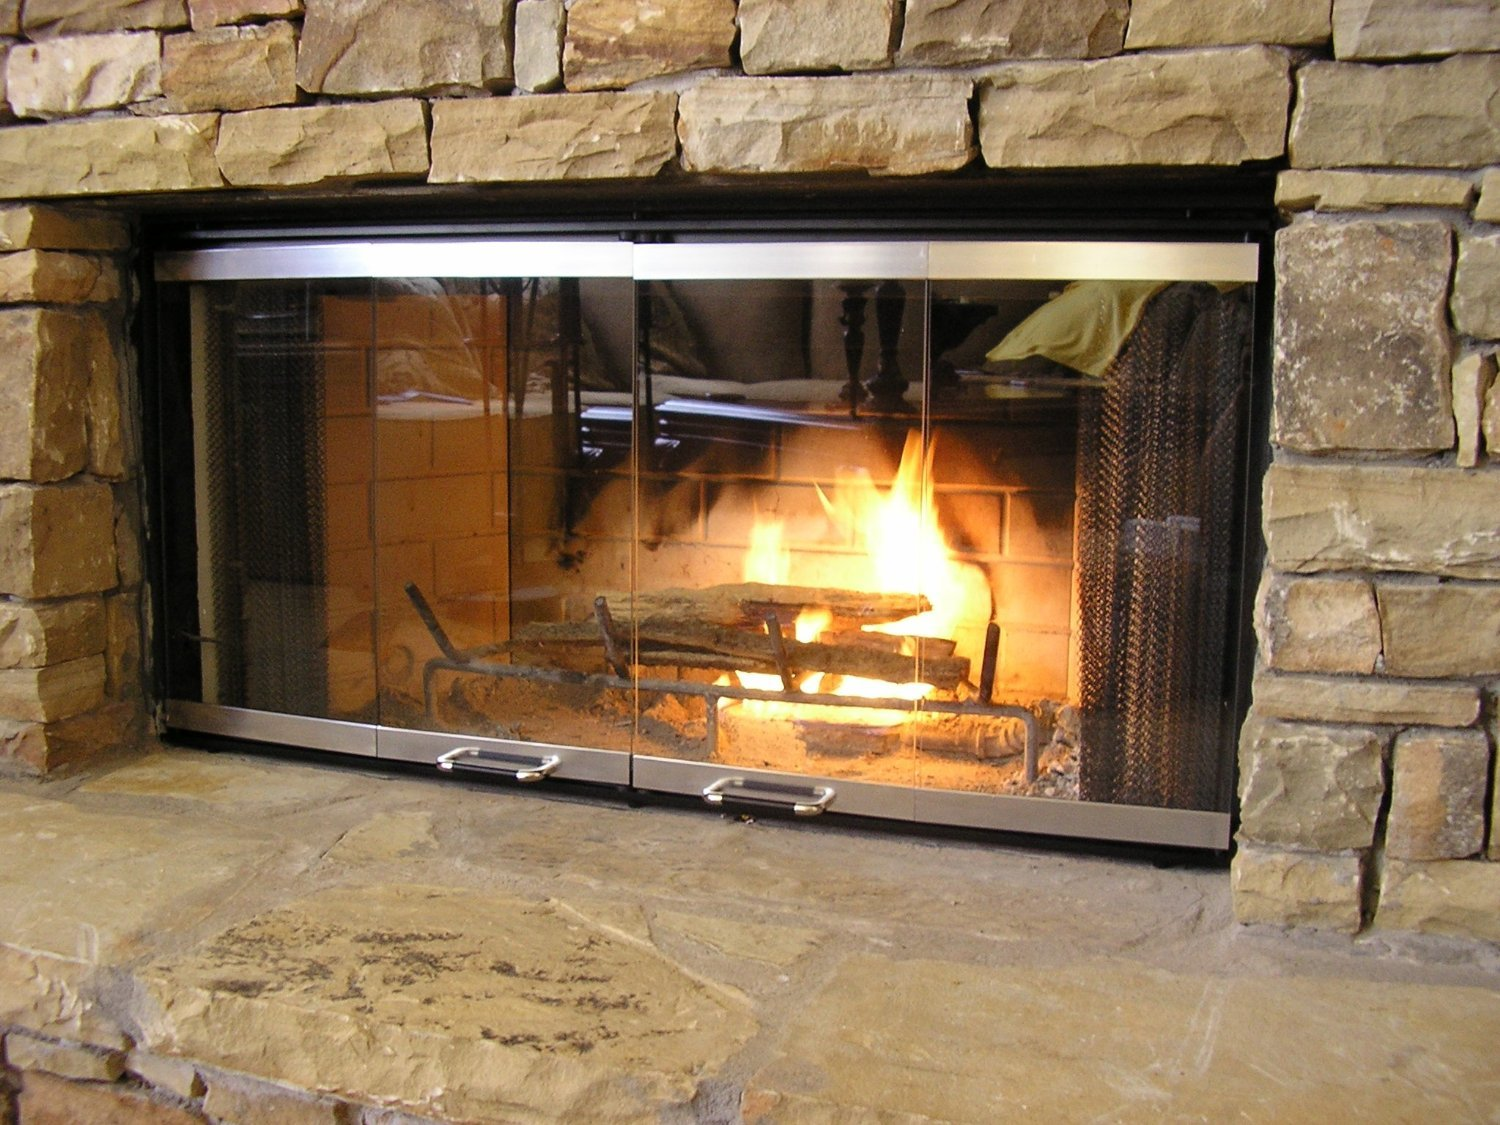 pinterest pits in glass for way bonfire than warm they a images more functional your to redecorate keep fireplace out and best on just doors claydennis air cold are